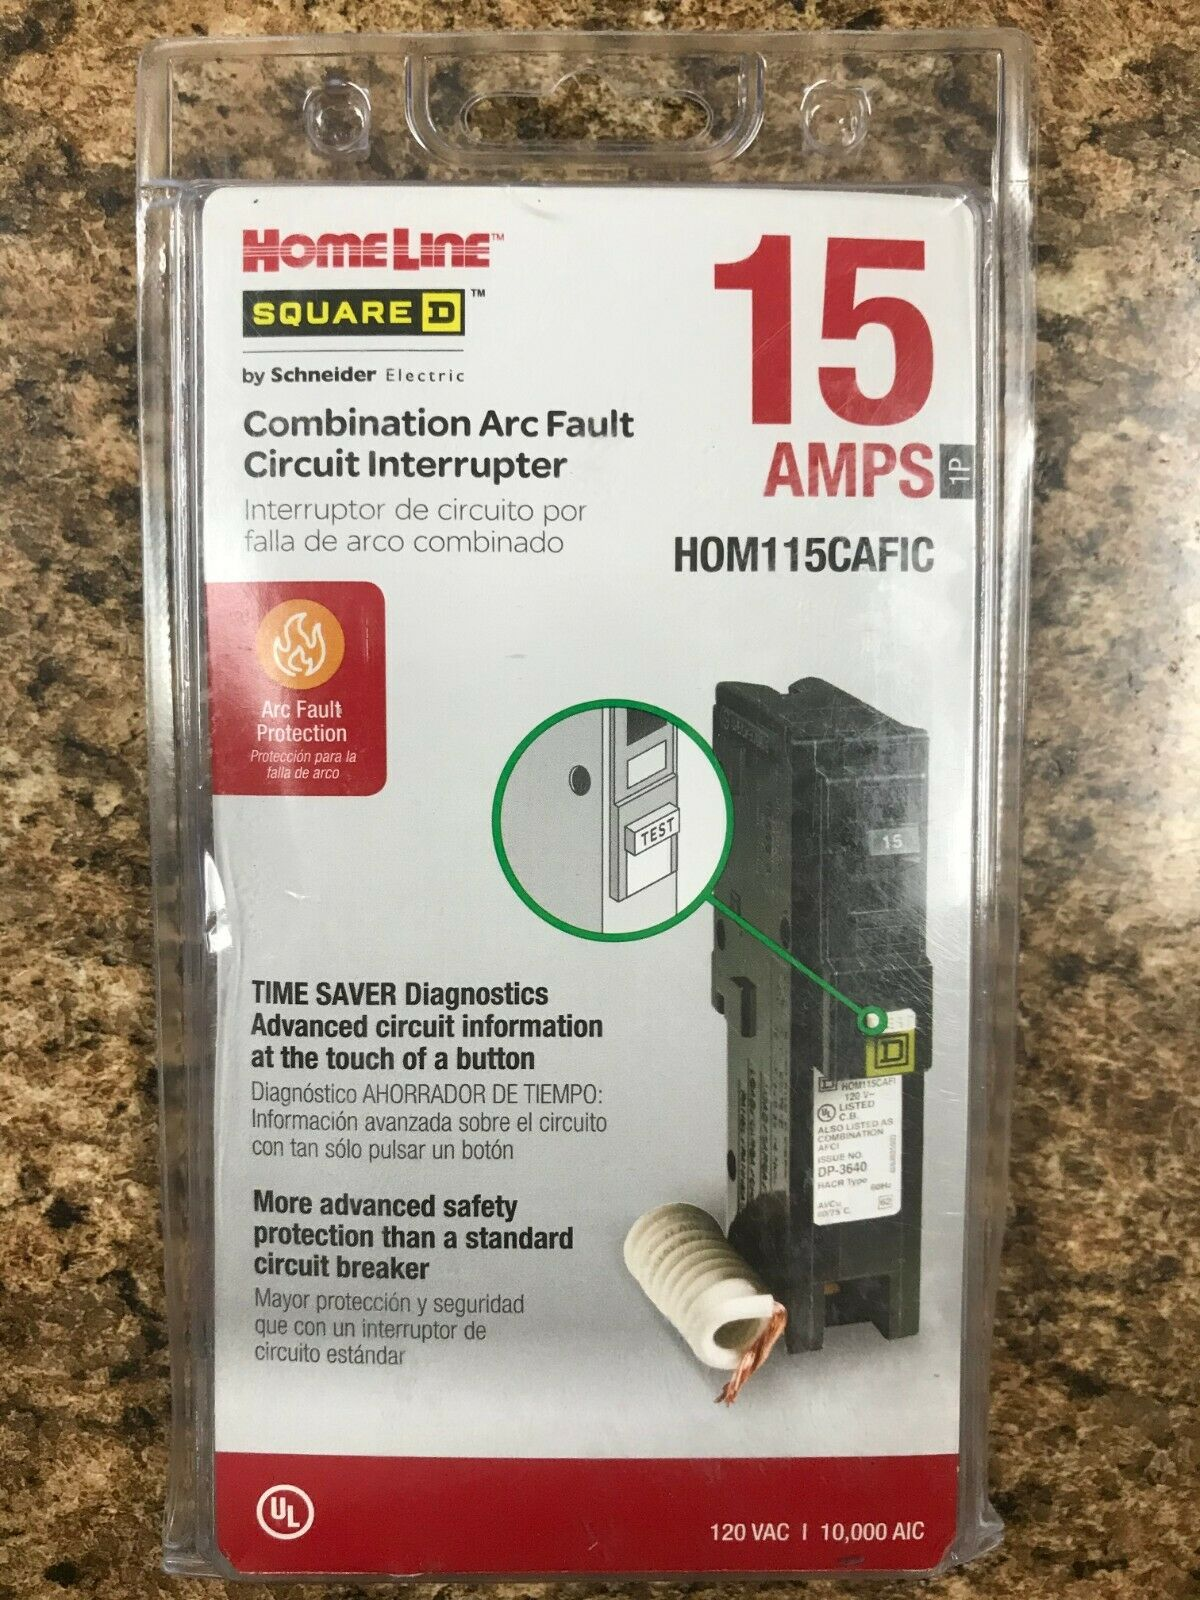 Square D Hom115cafi N 15a 120v 1p New 3299 Picclick Homeline 15amp 1pole Combination Arc Fault Circuit Breaker 1 Of 1free Shipping